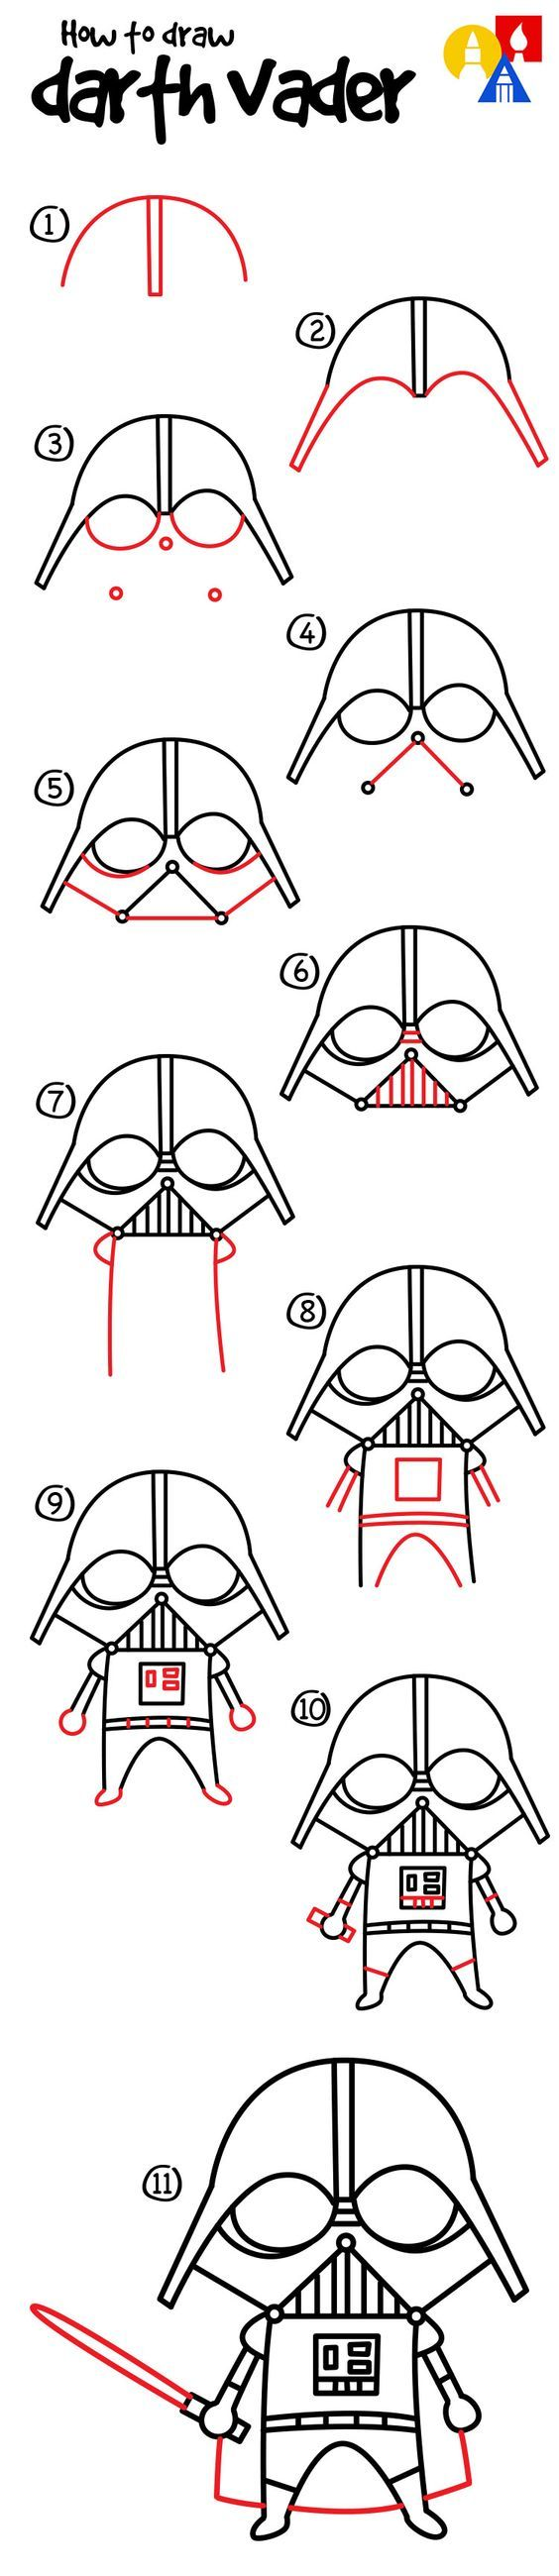 How To Draw A Cartoon Darth Vader En 2019 Dessins Faciles